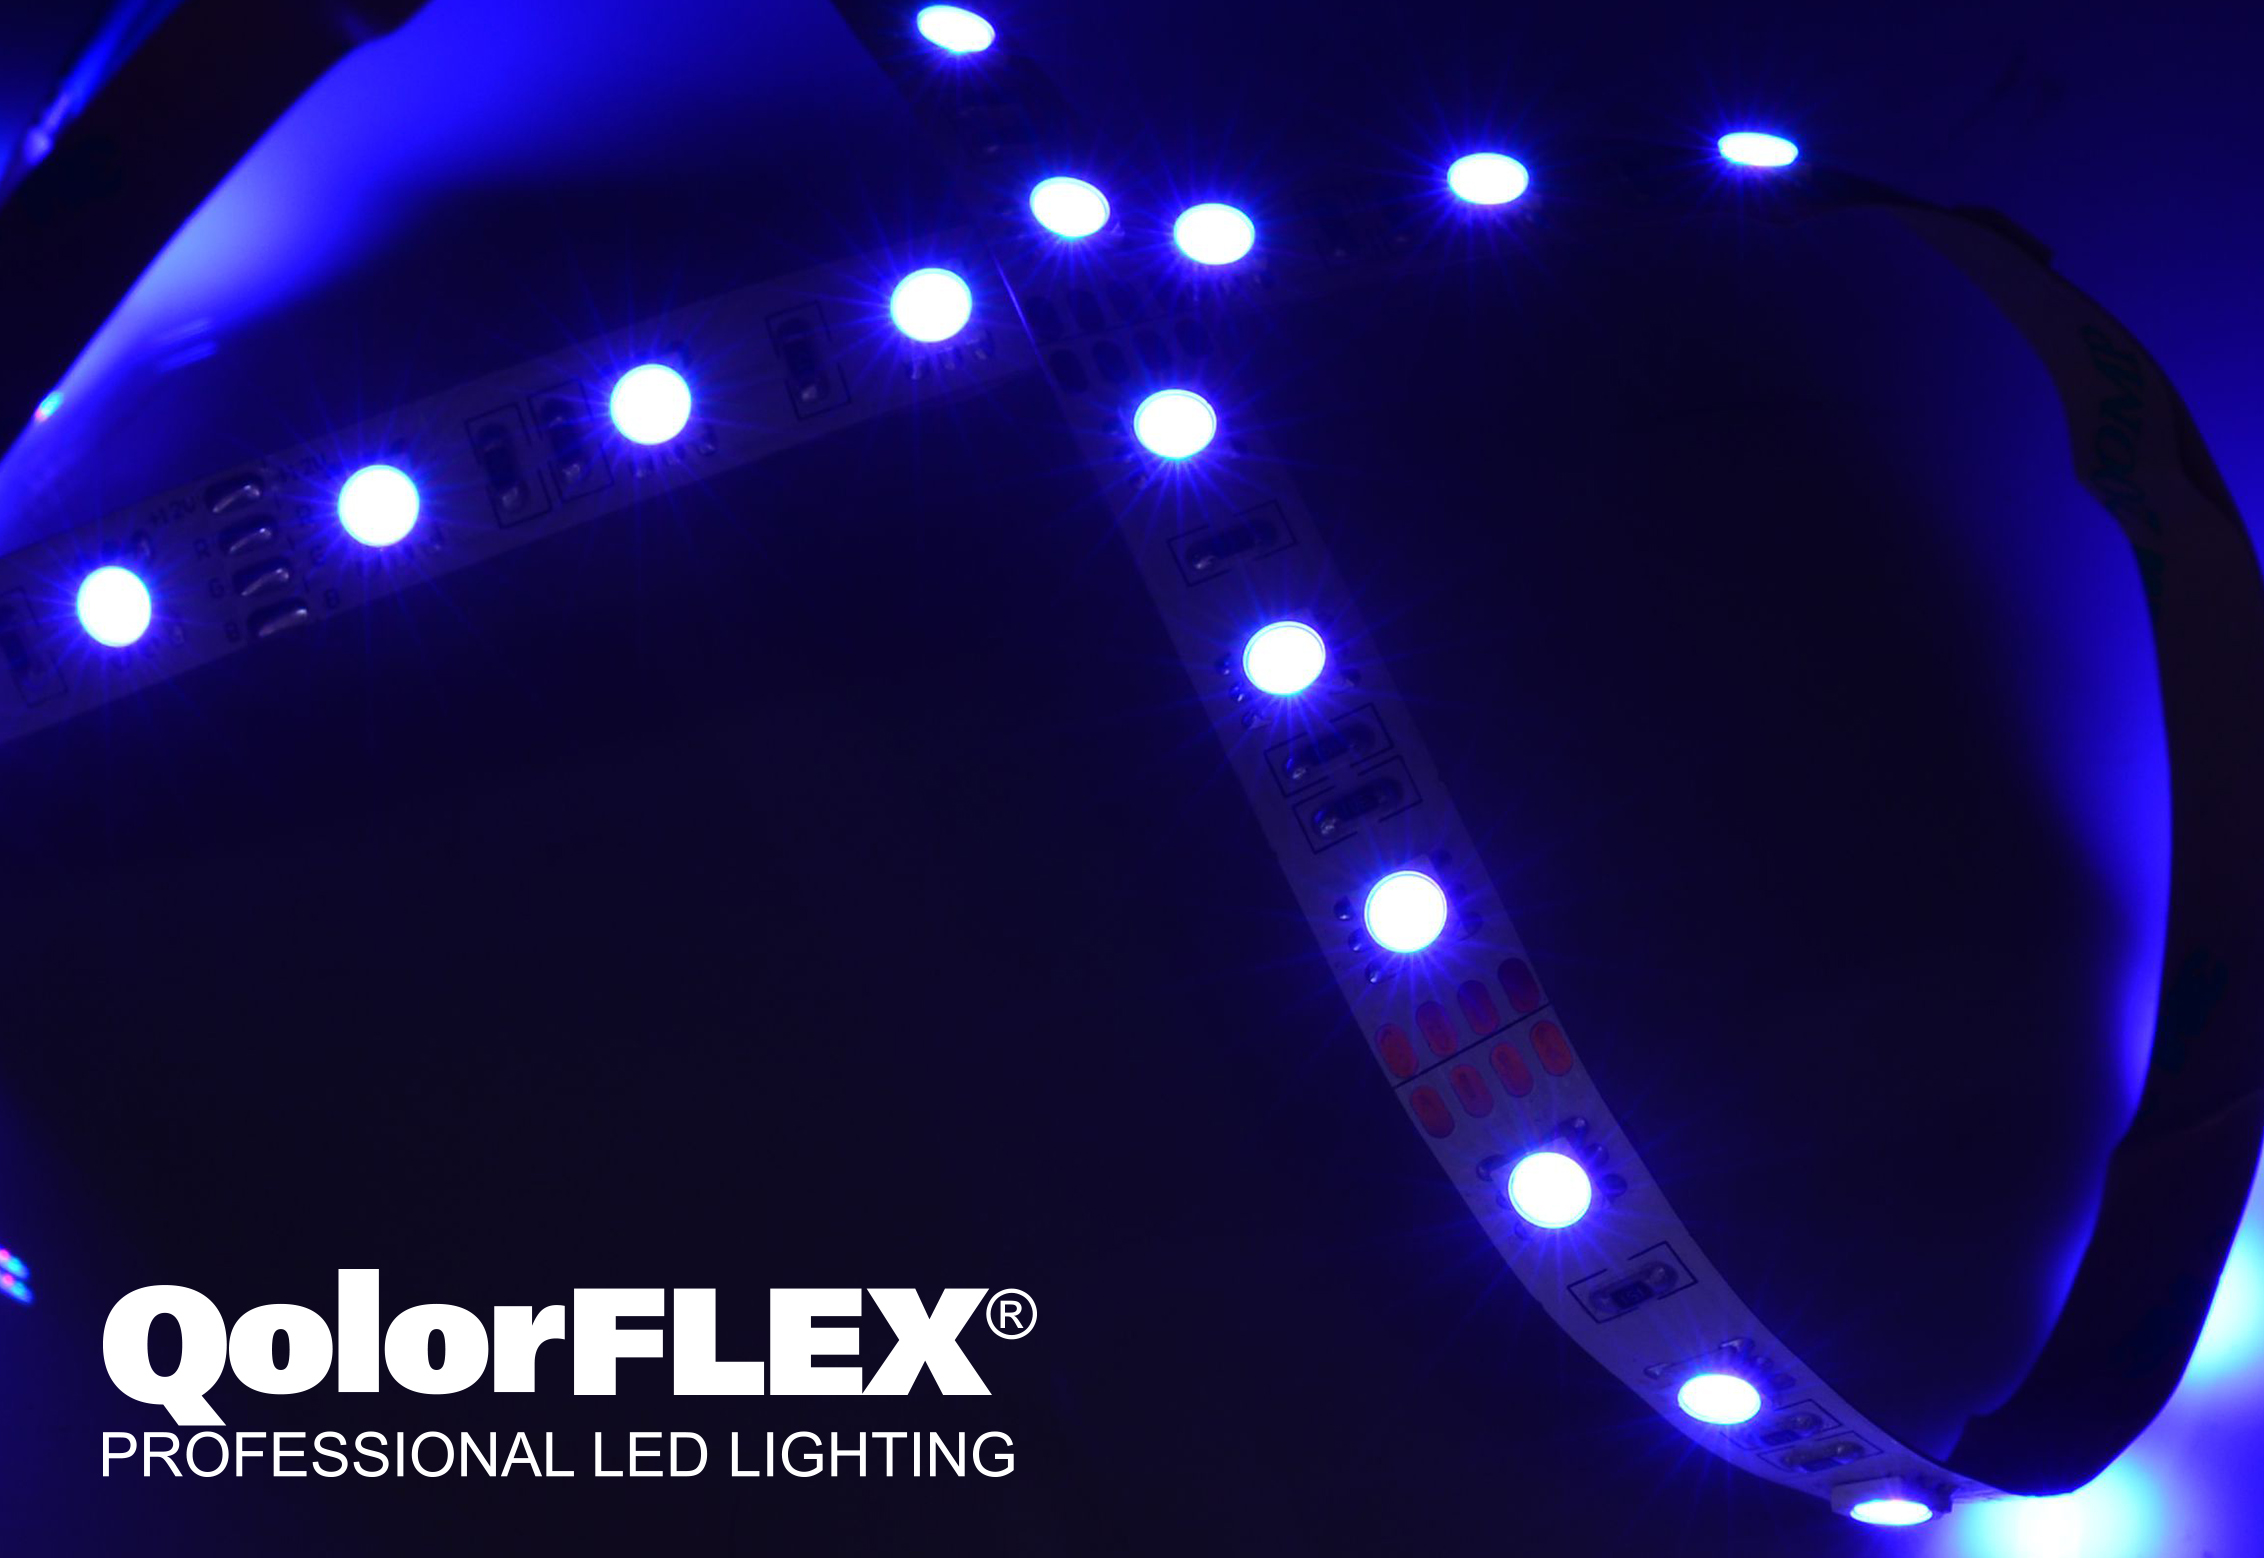 QolorFLEX LED Tape close up - blue infinity